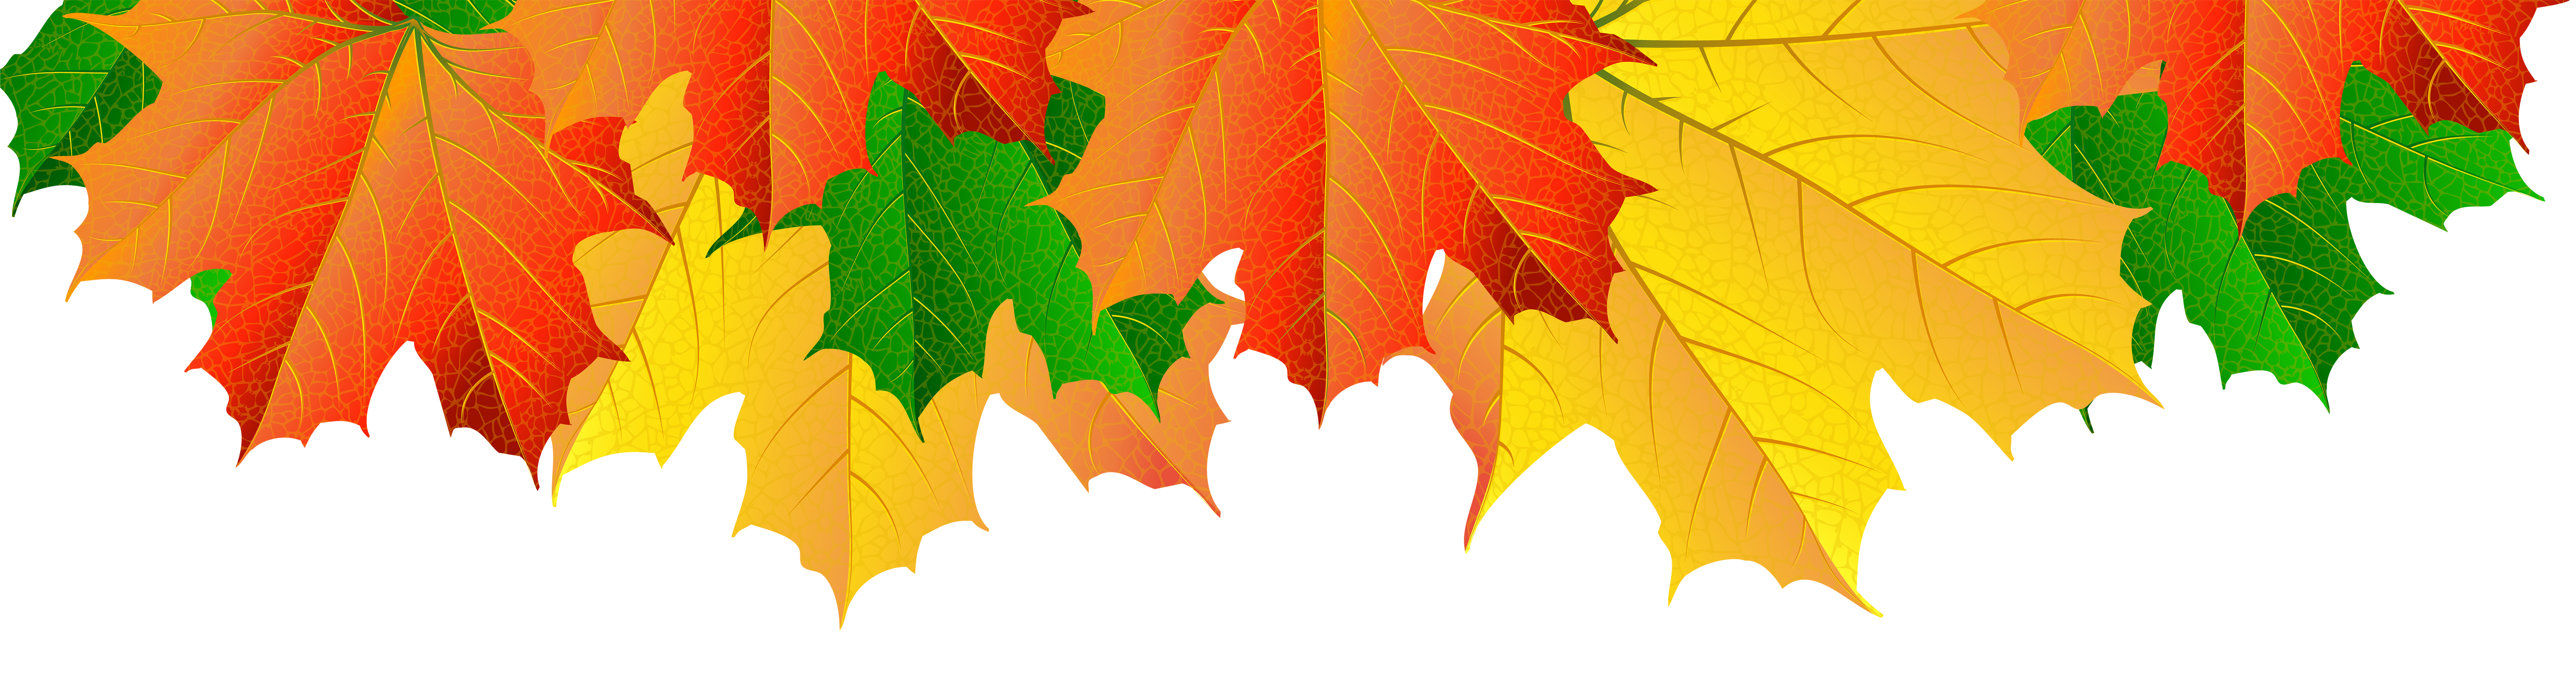 Clip art image gallery. Fall leaves border png